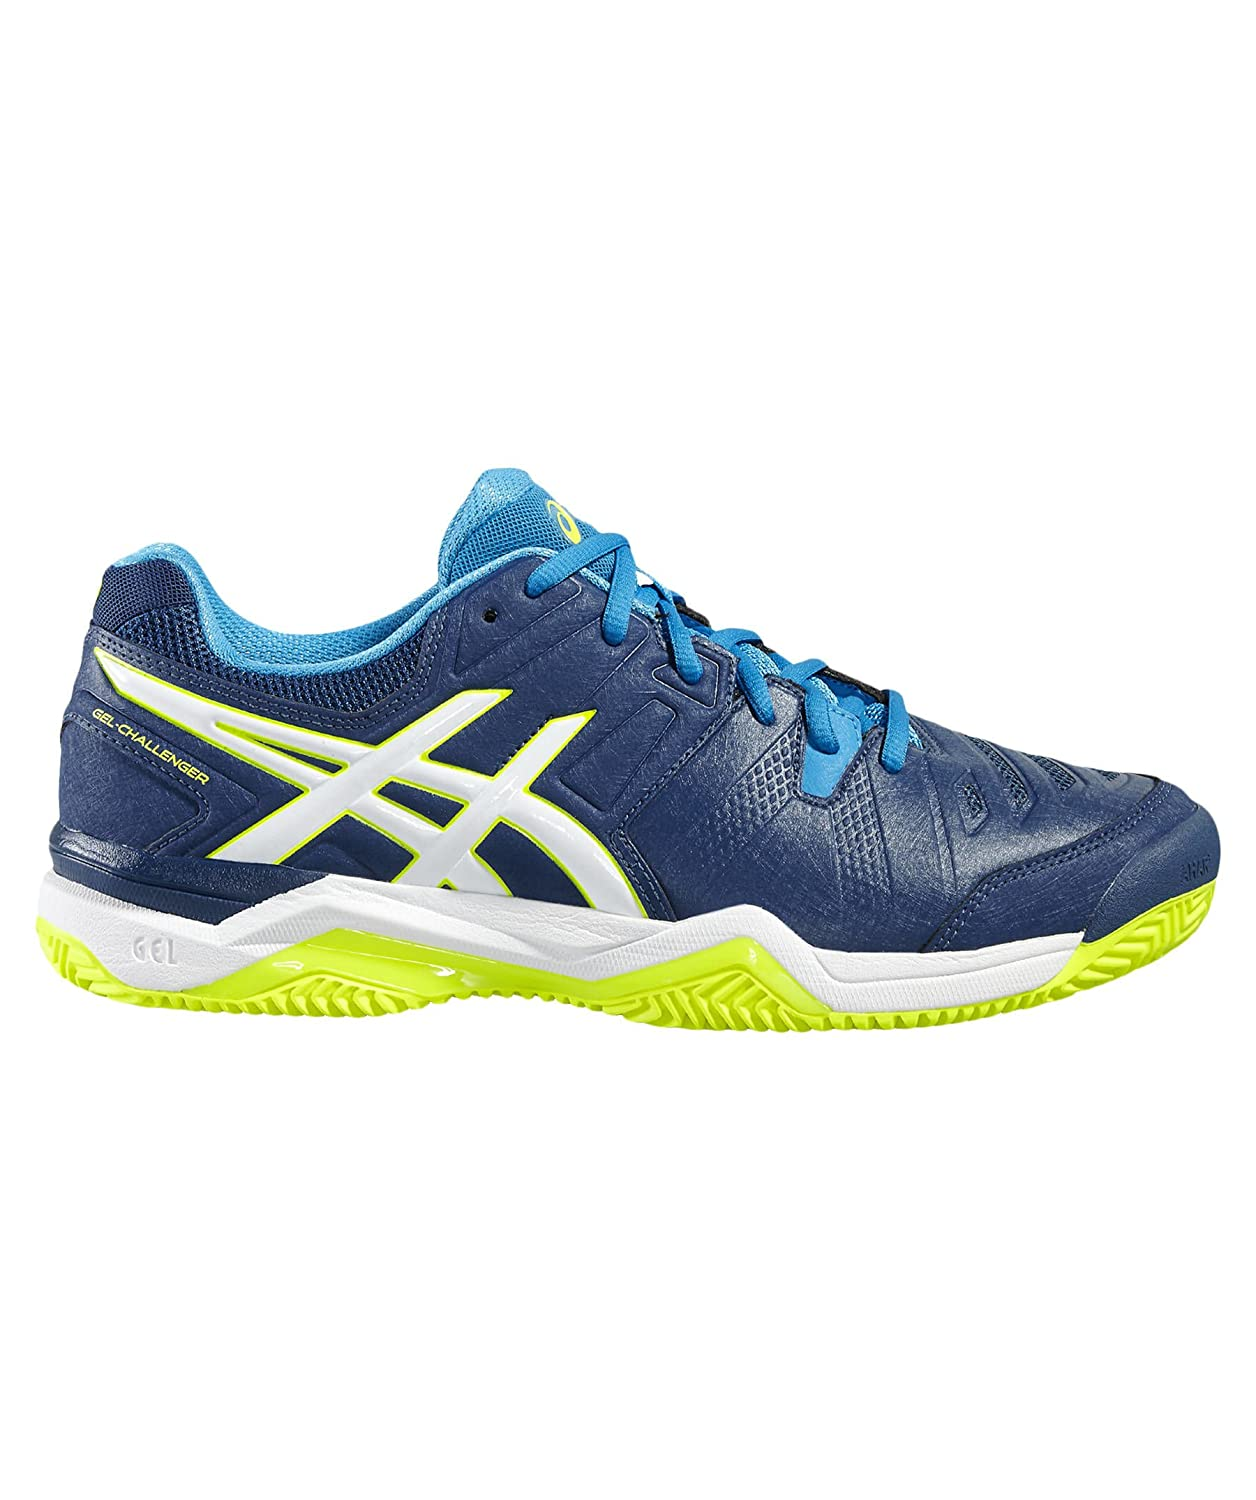 Asics Herren Tennisschuhe Outdoor Gel-Challenger 10 Clay